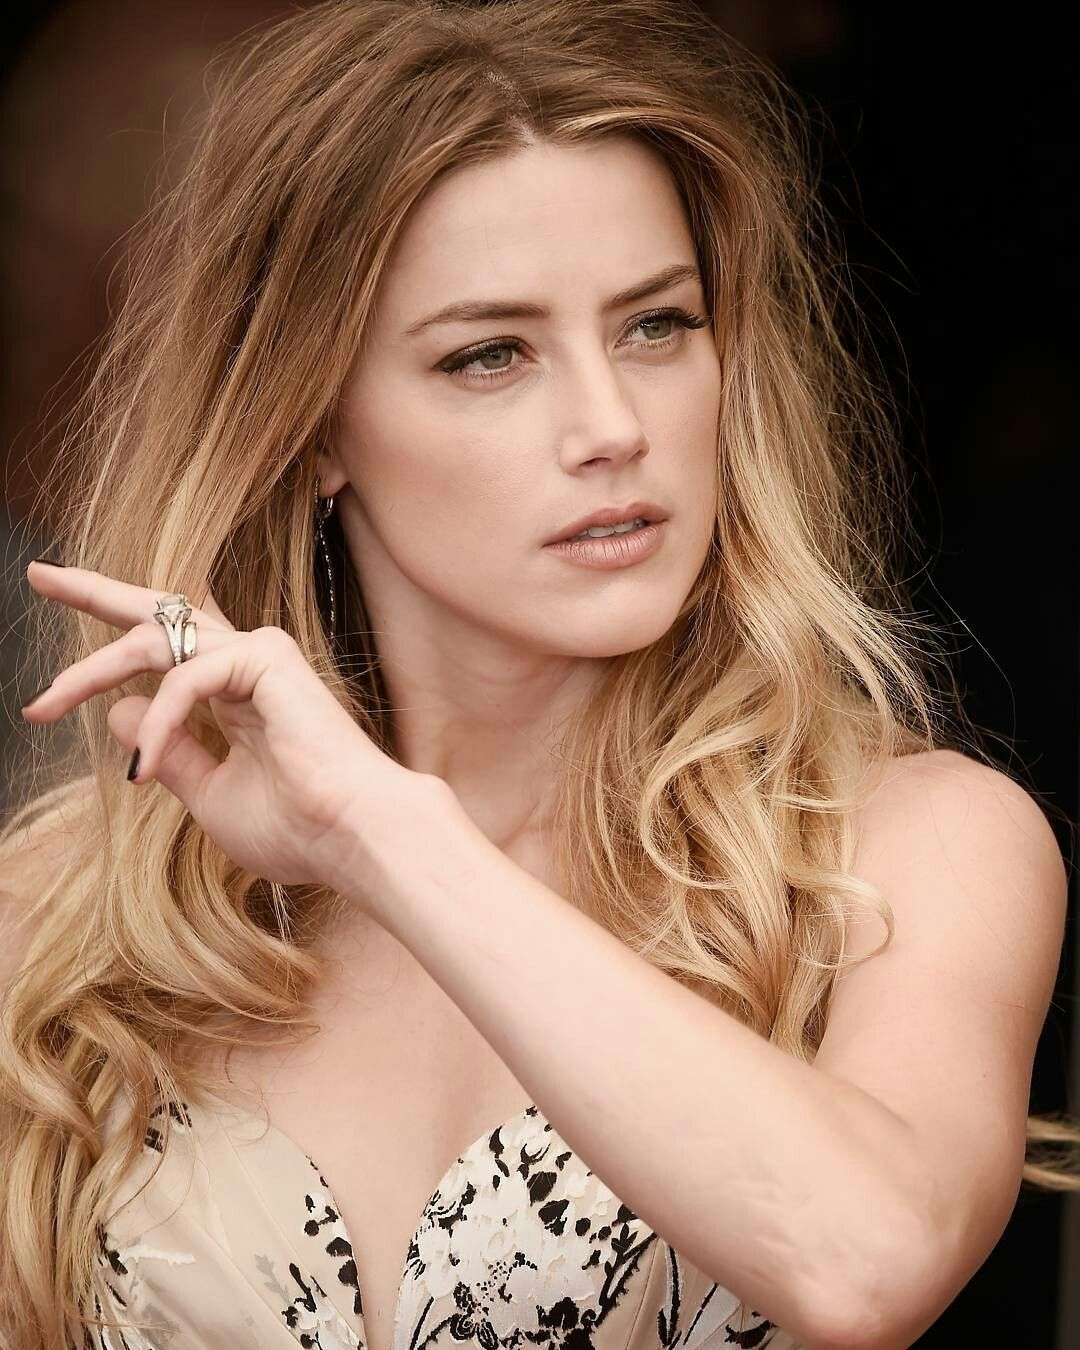 Pin by alexx ramirez on amber heard pinterest amber heard and amber